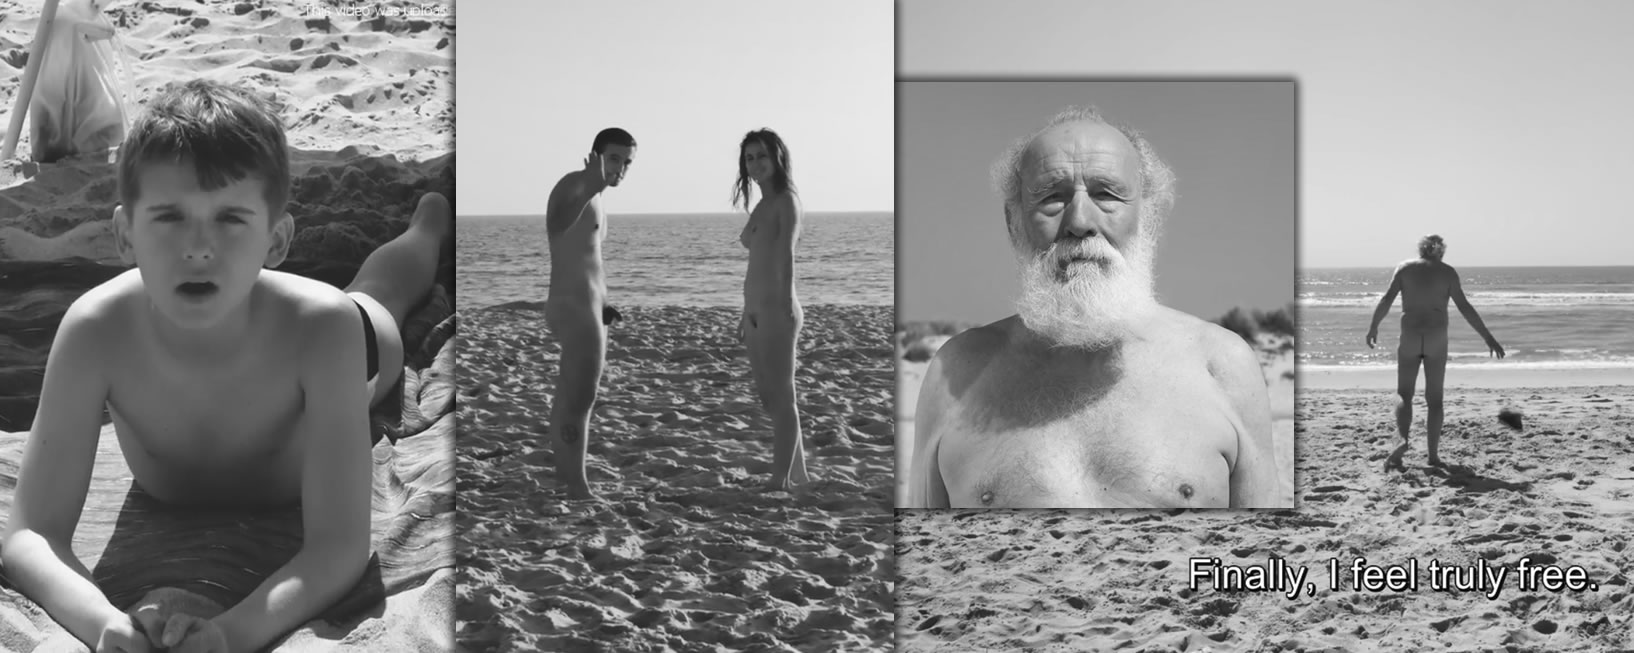 Don't wait until you are too old to experience nudism